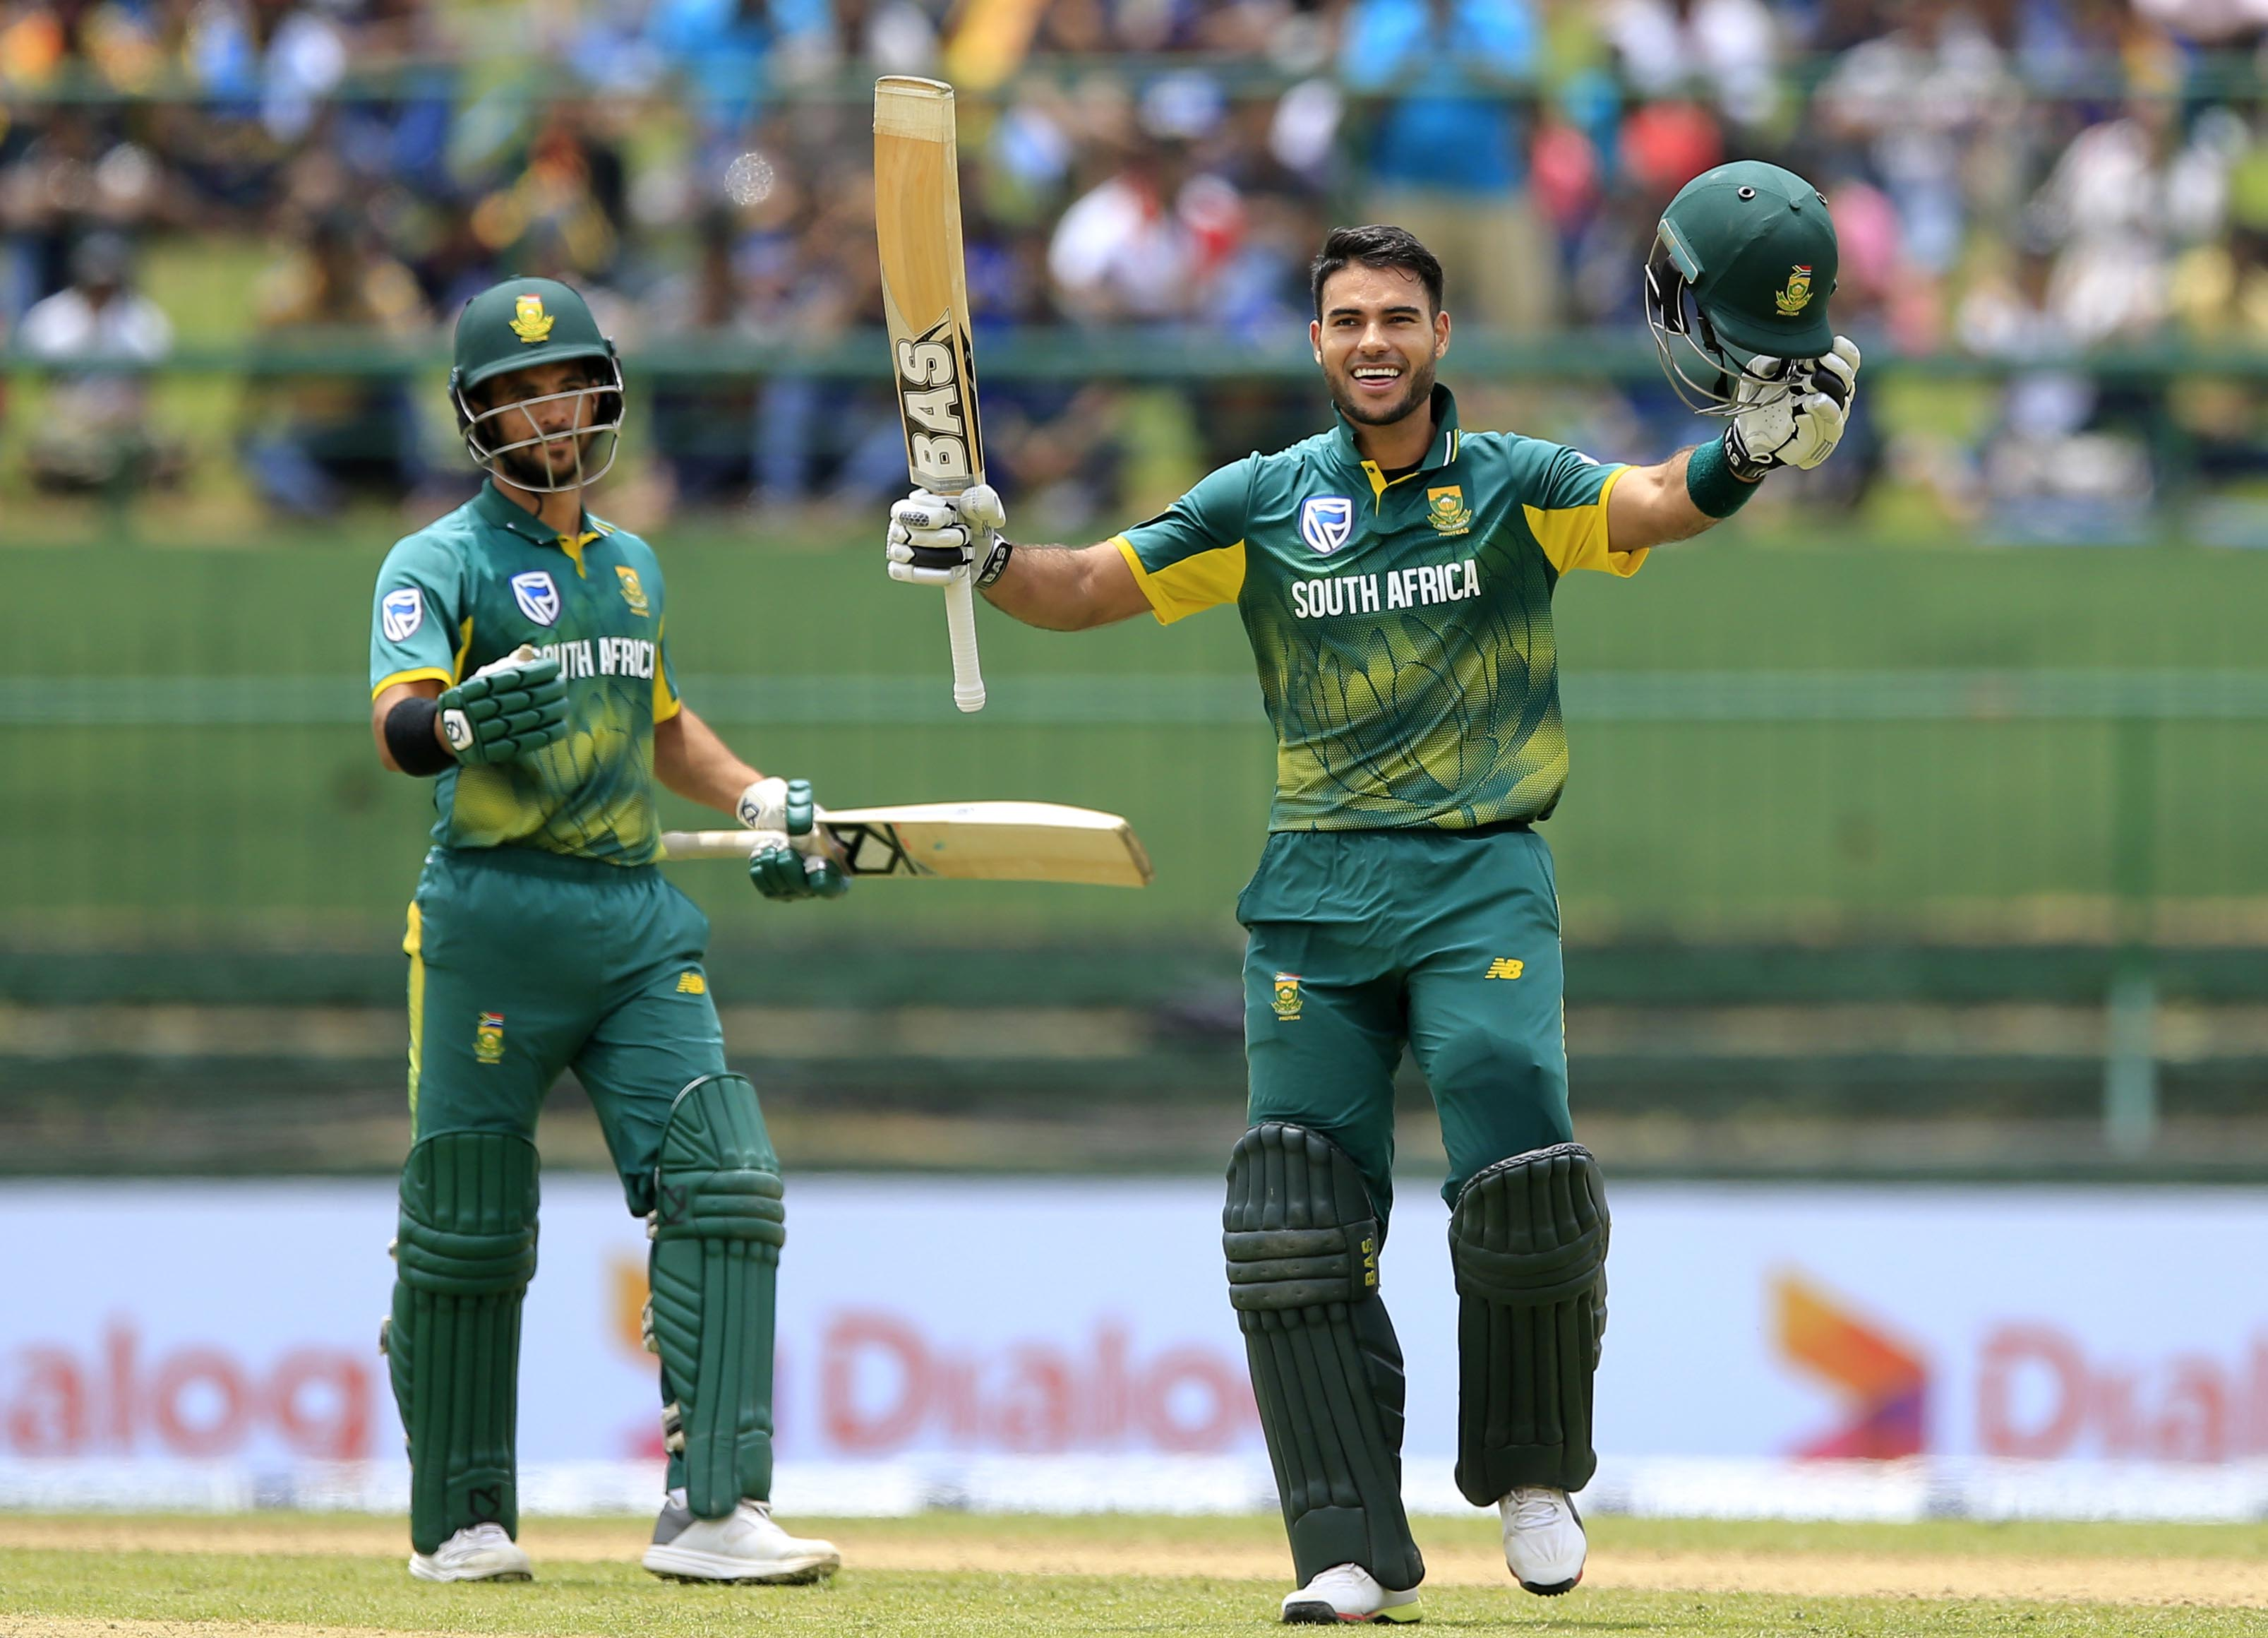 Hendricks' ton on debut inspires South Africa to clinch ODI series